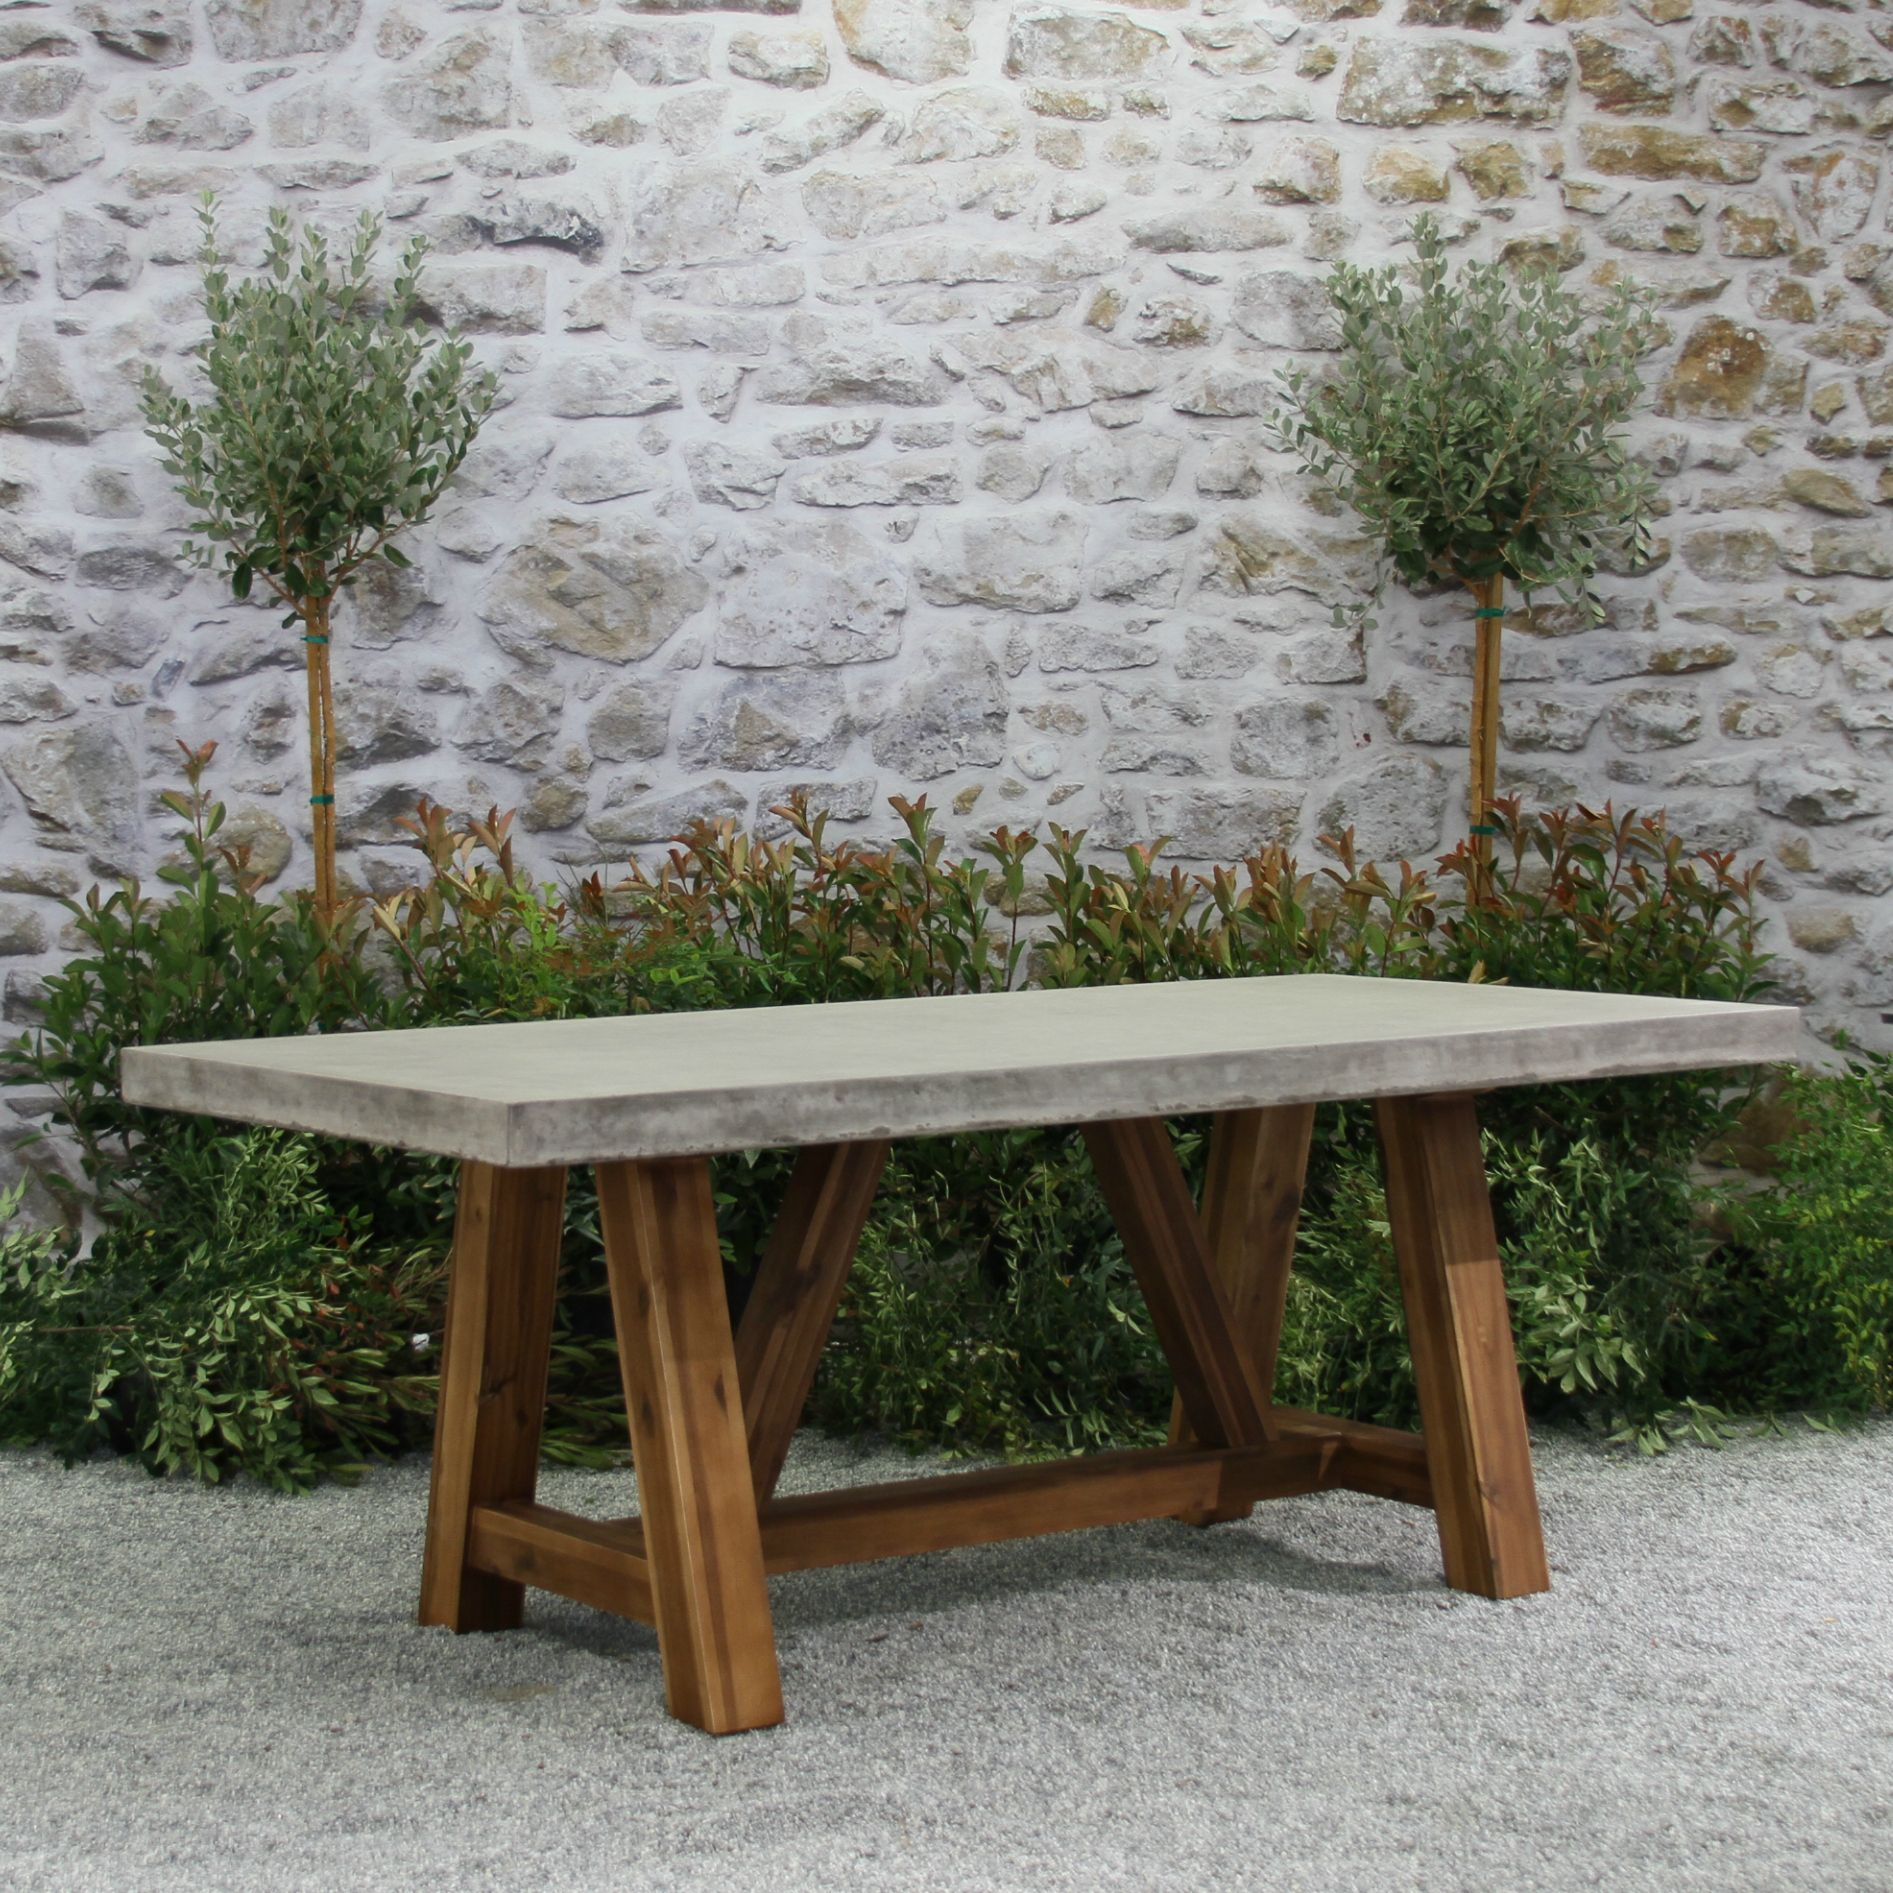 Outdoor tables on sale now an outdoor table from our teak outdoor furniture collection makes it easy to entertain in style the bordeaux 6 5 x 39 dining